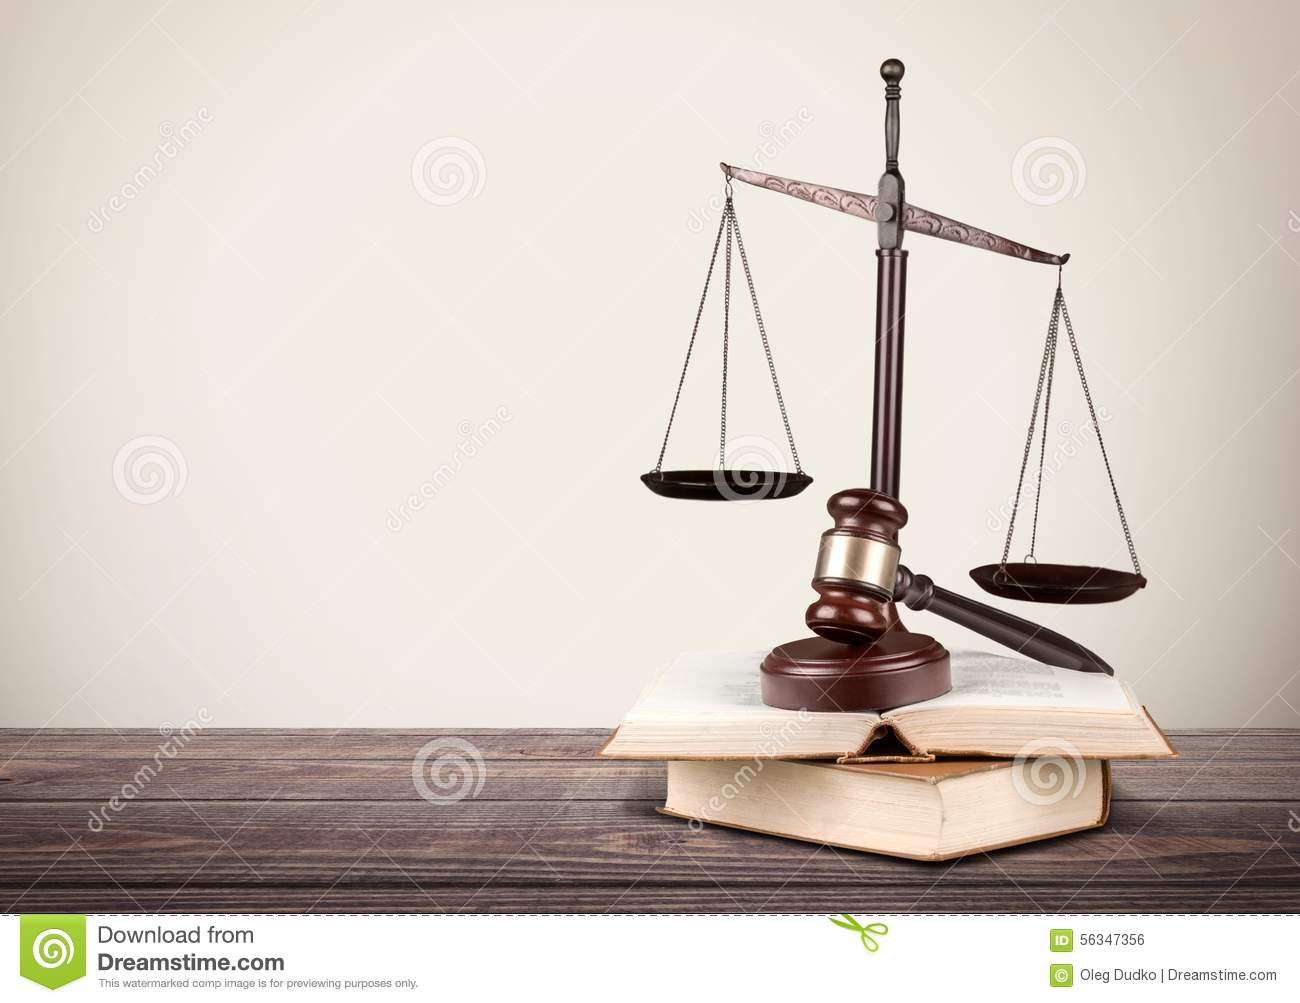 Scale, law, lawyer